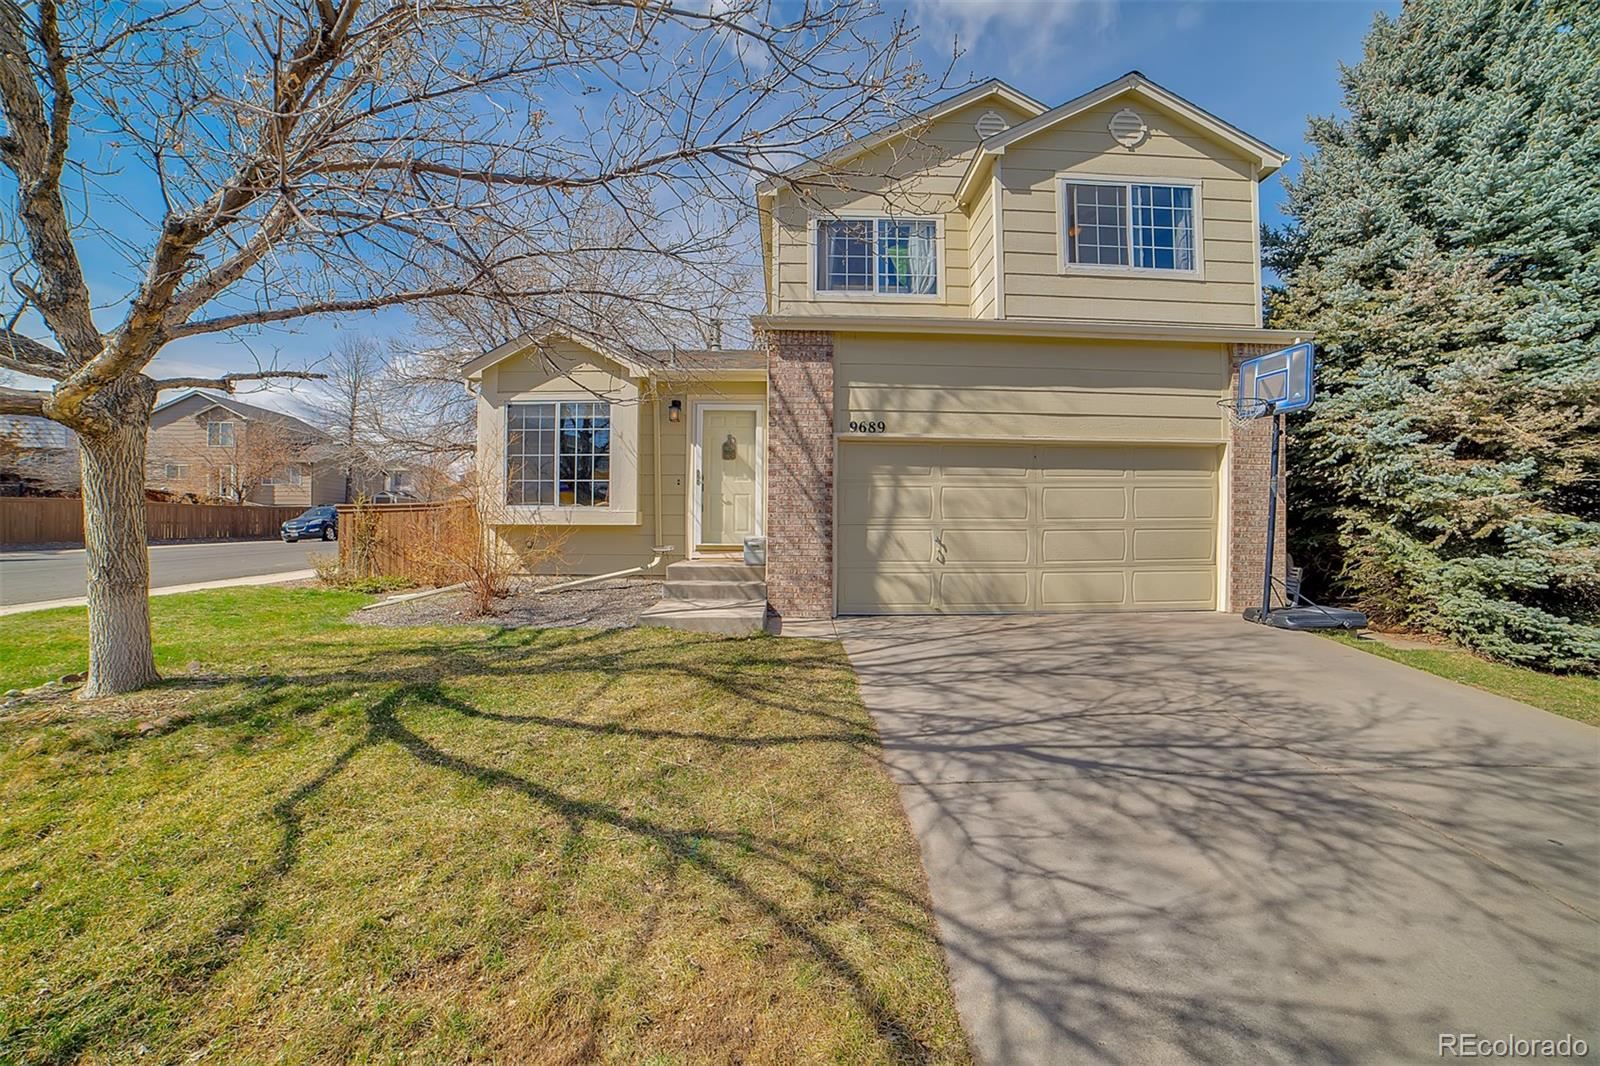 9689  Cove Creek Drive, Highlands Ranch, CO 80129 - #: 4910328